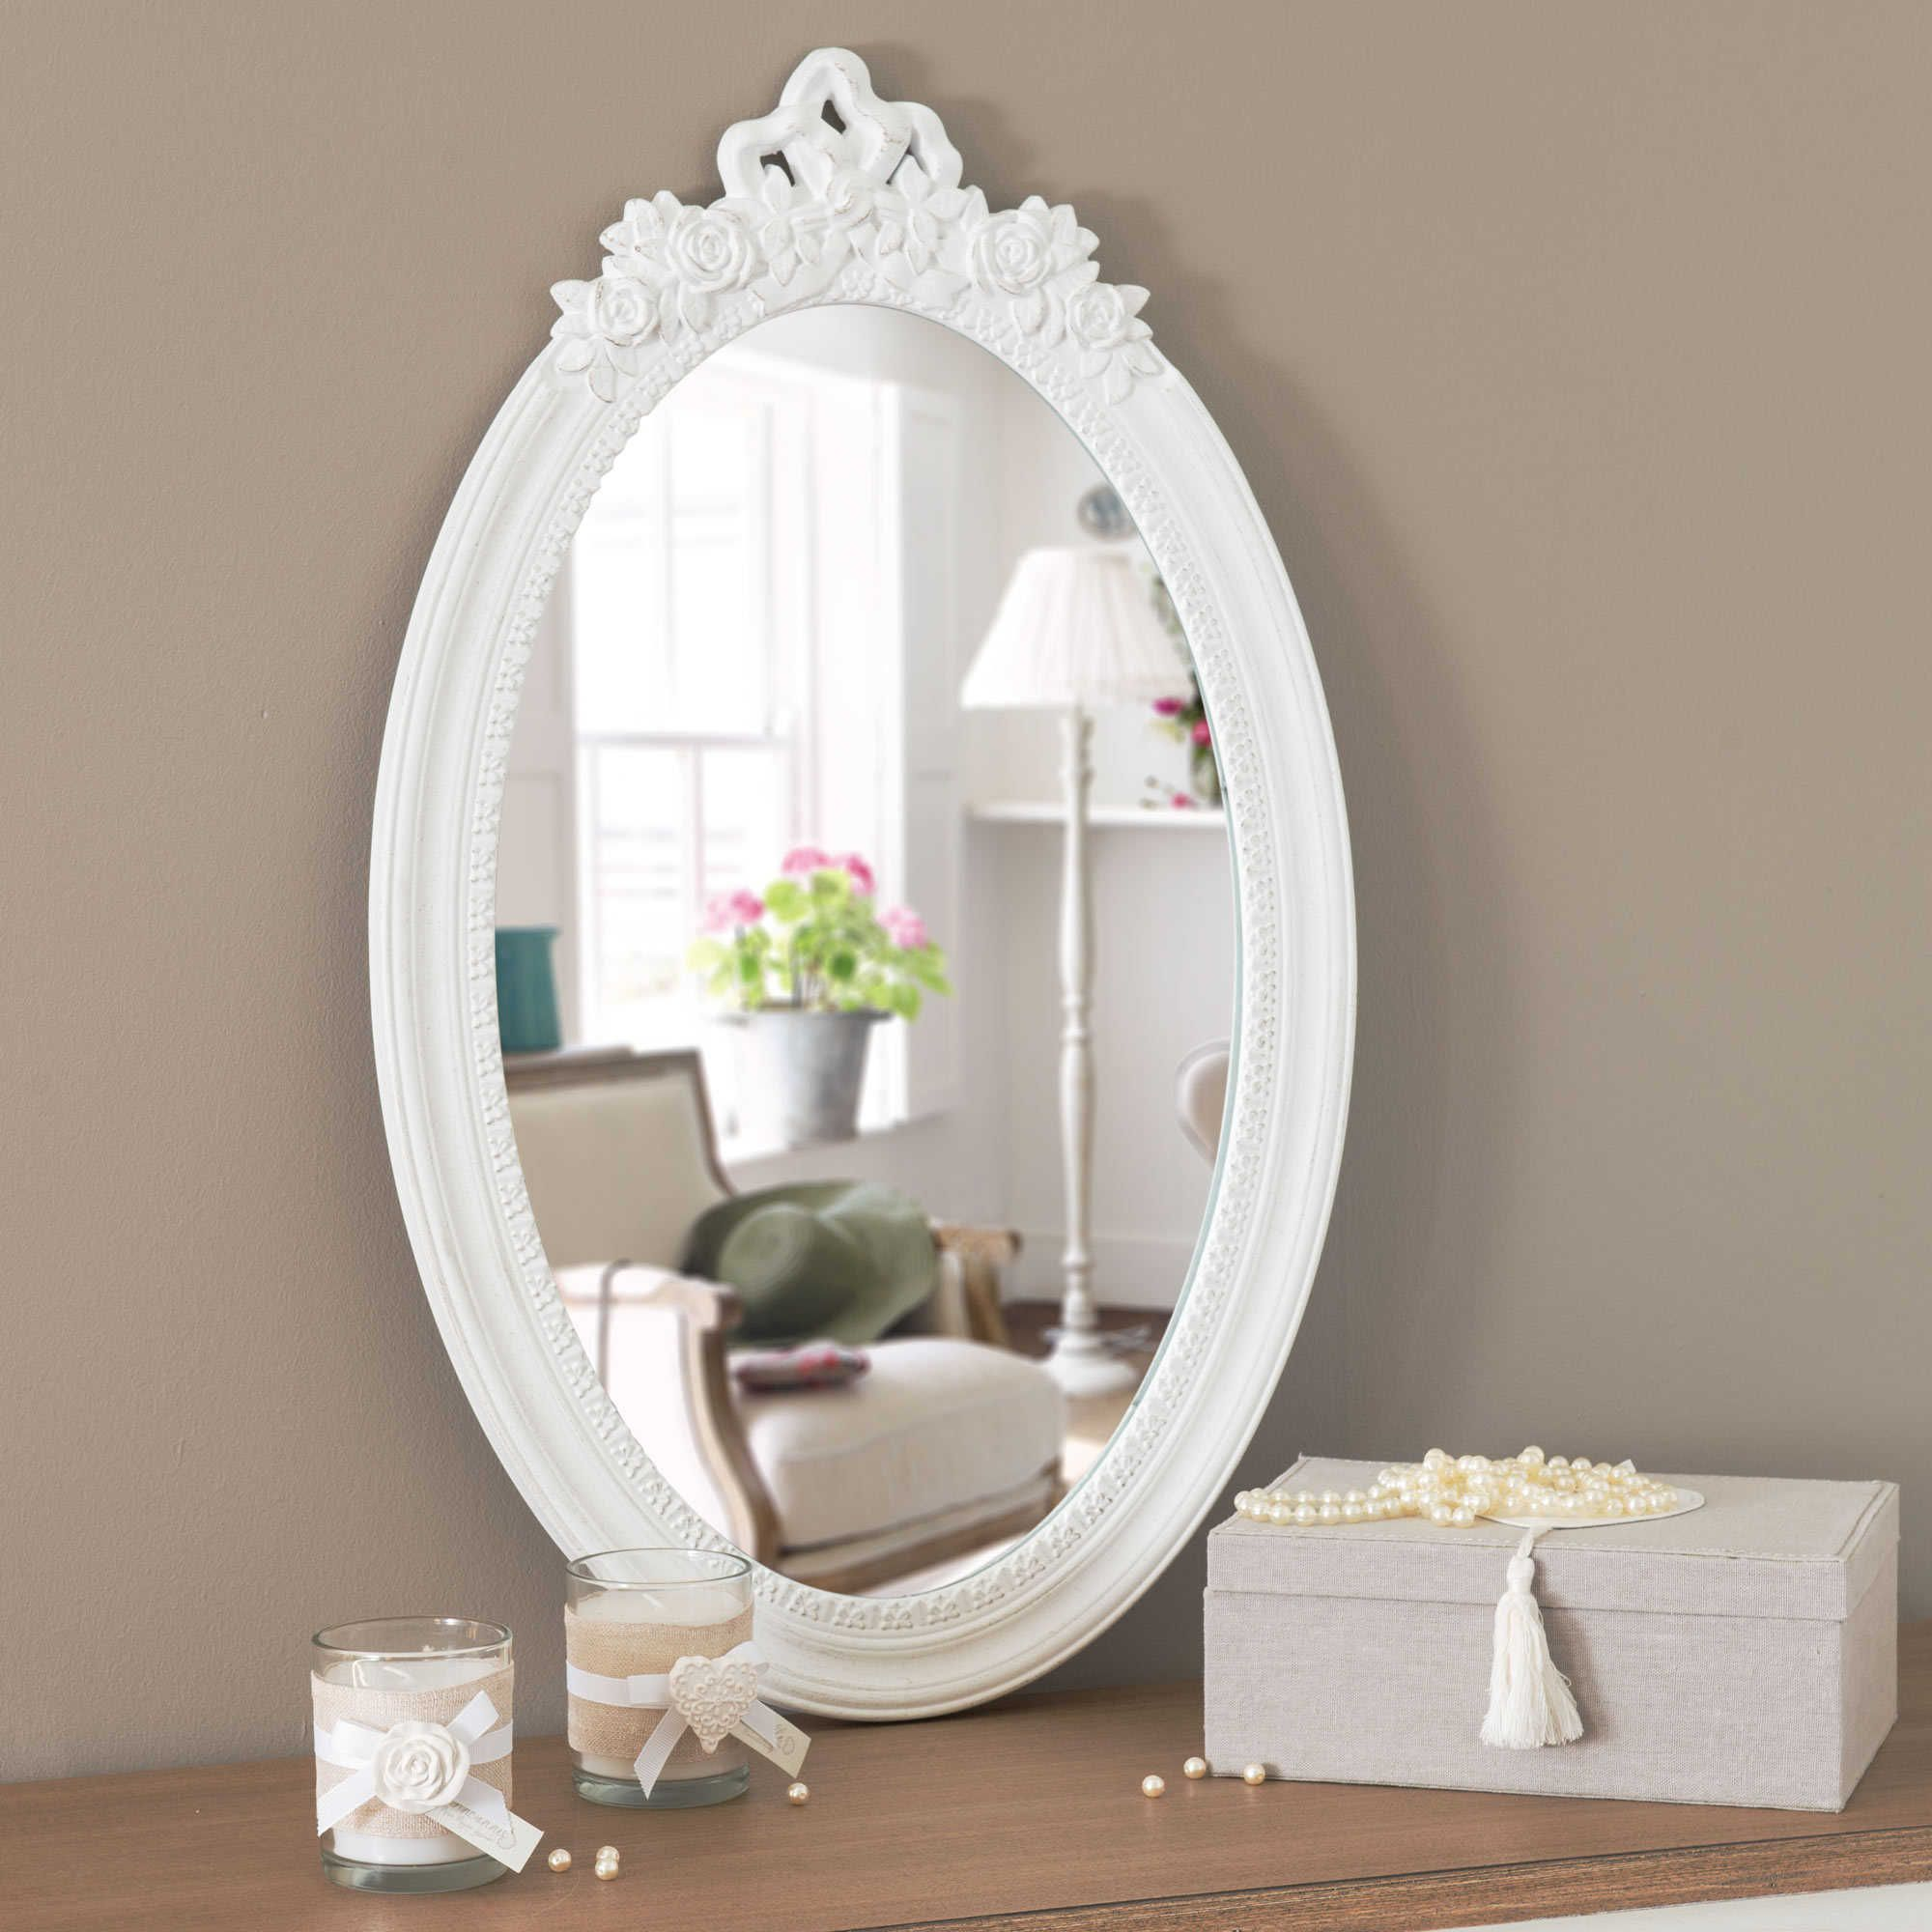 miroir en bois blanc h 65 cm romane maison du monde. Black Bedroom Furniture Sets. Home Design Ideas